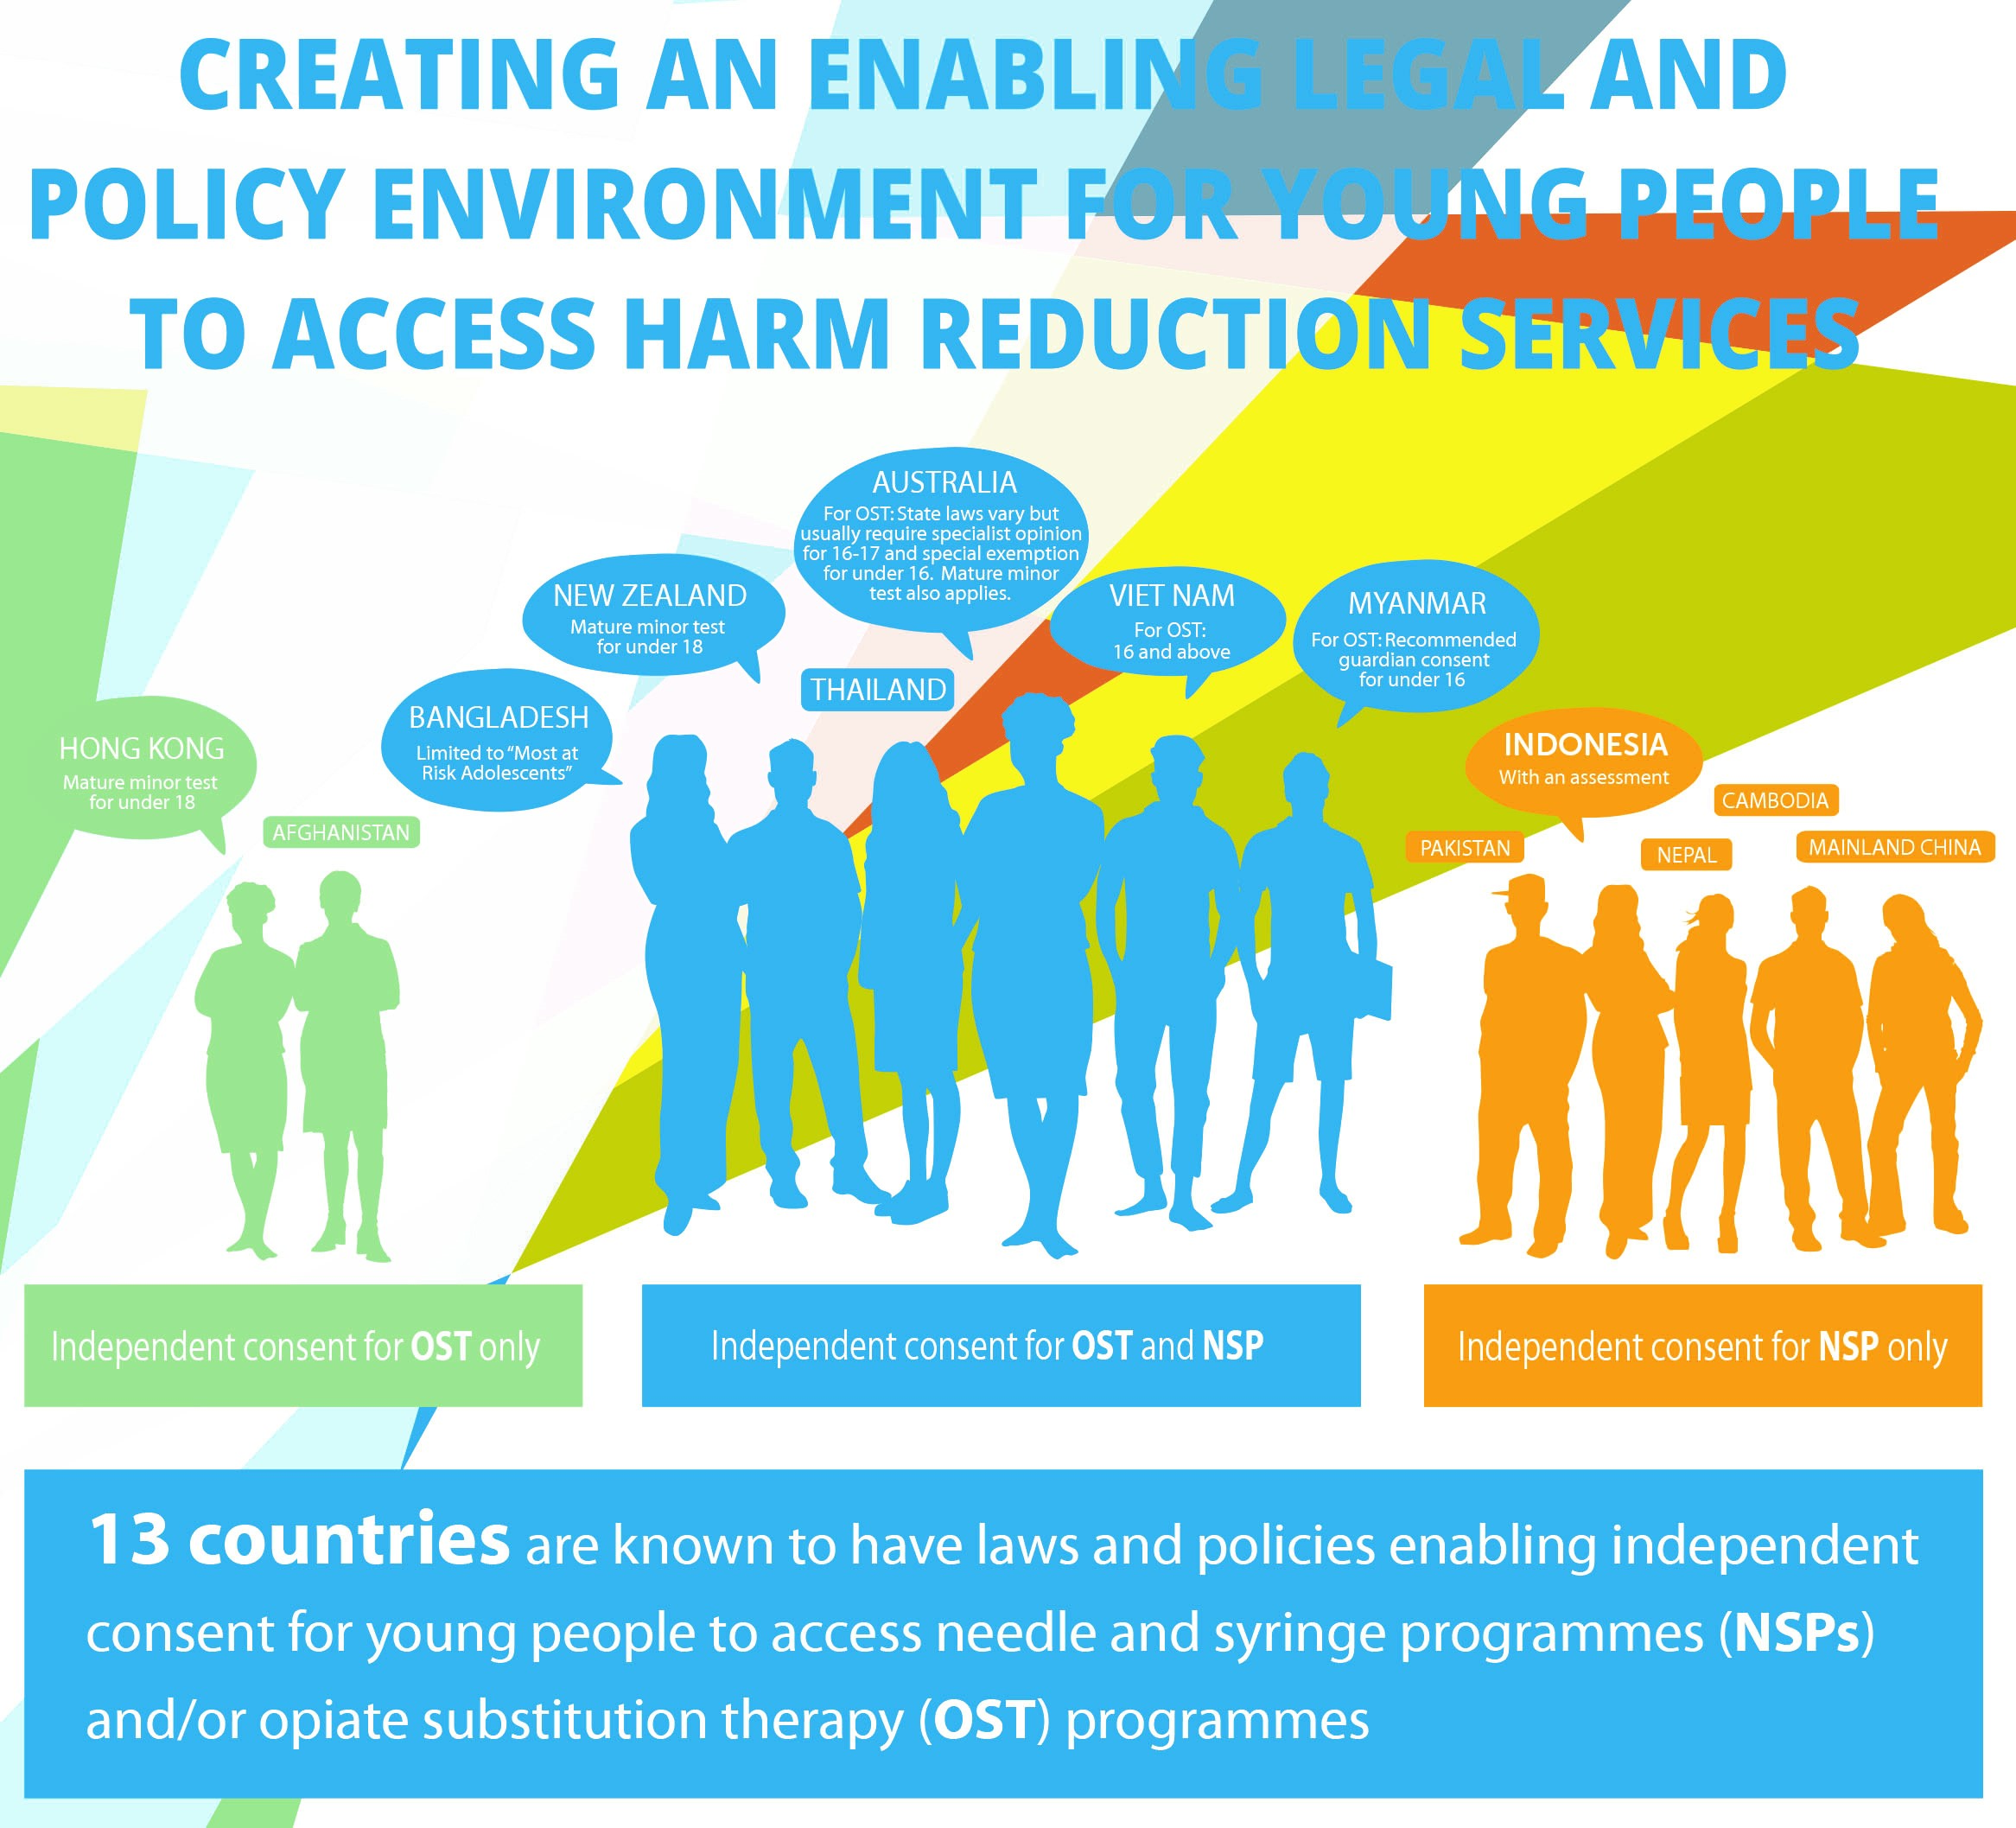 Legal barriers, stigma keep young drug users in harm's way | UNESCO